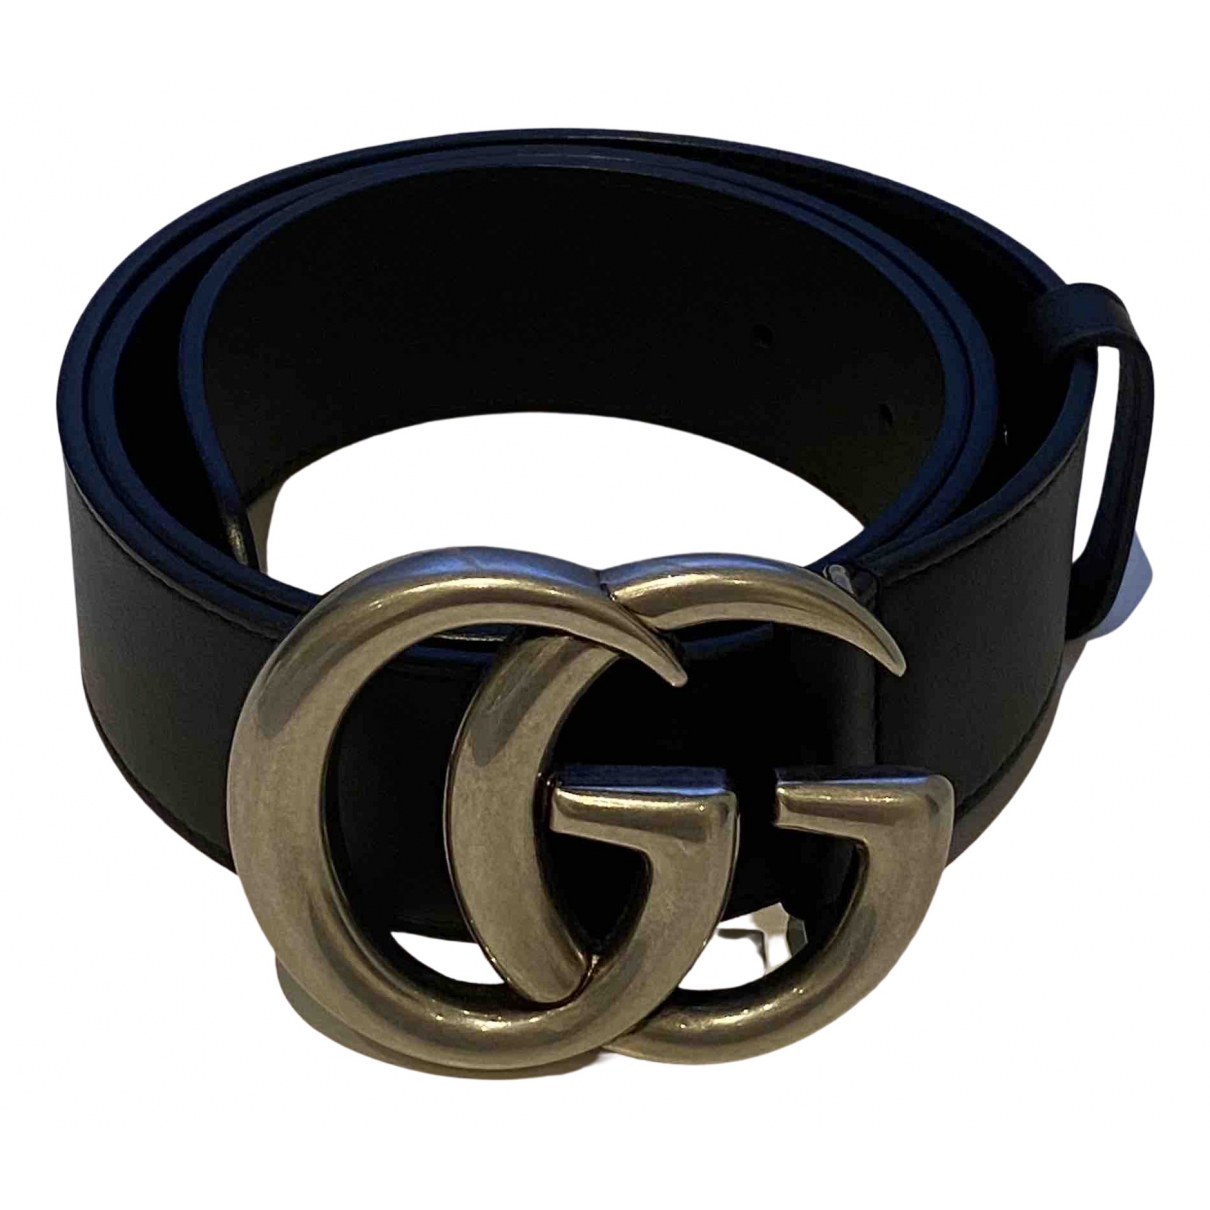 Gucci GG Buckle Black Leather belt for Women 80 cm